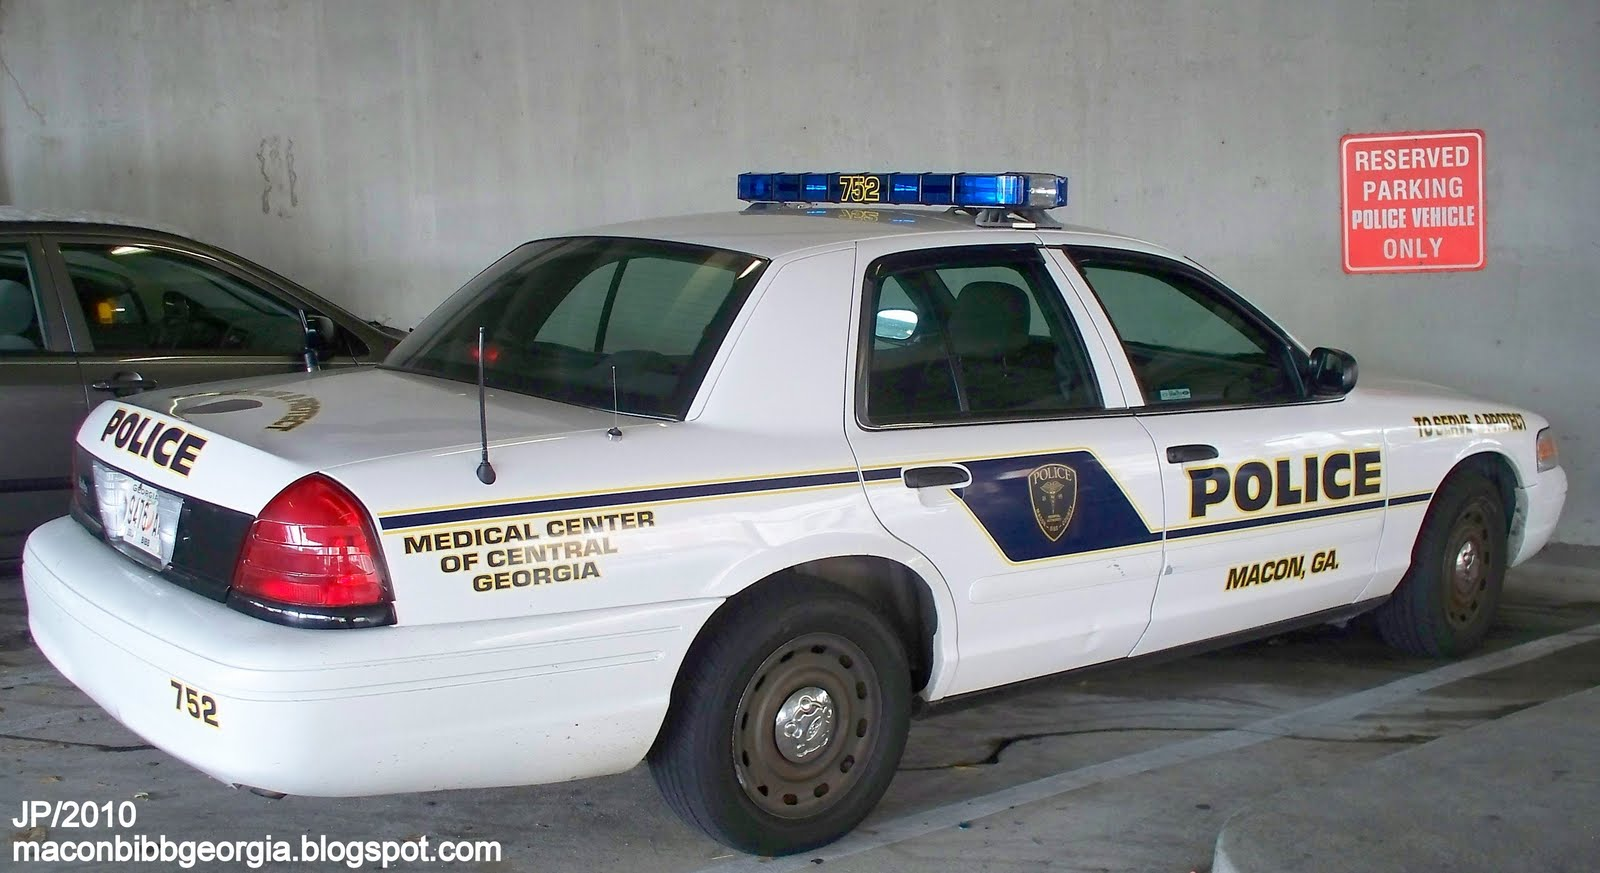 Georgia Georgian Police Stock Photos Georgia Georgian: Medical Center Hospital GA.FL.Urgent Care Health Cancer